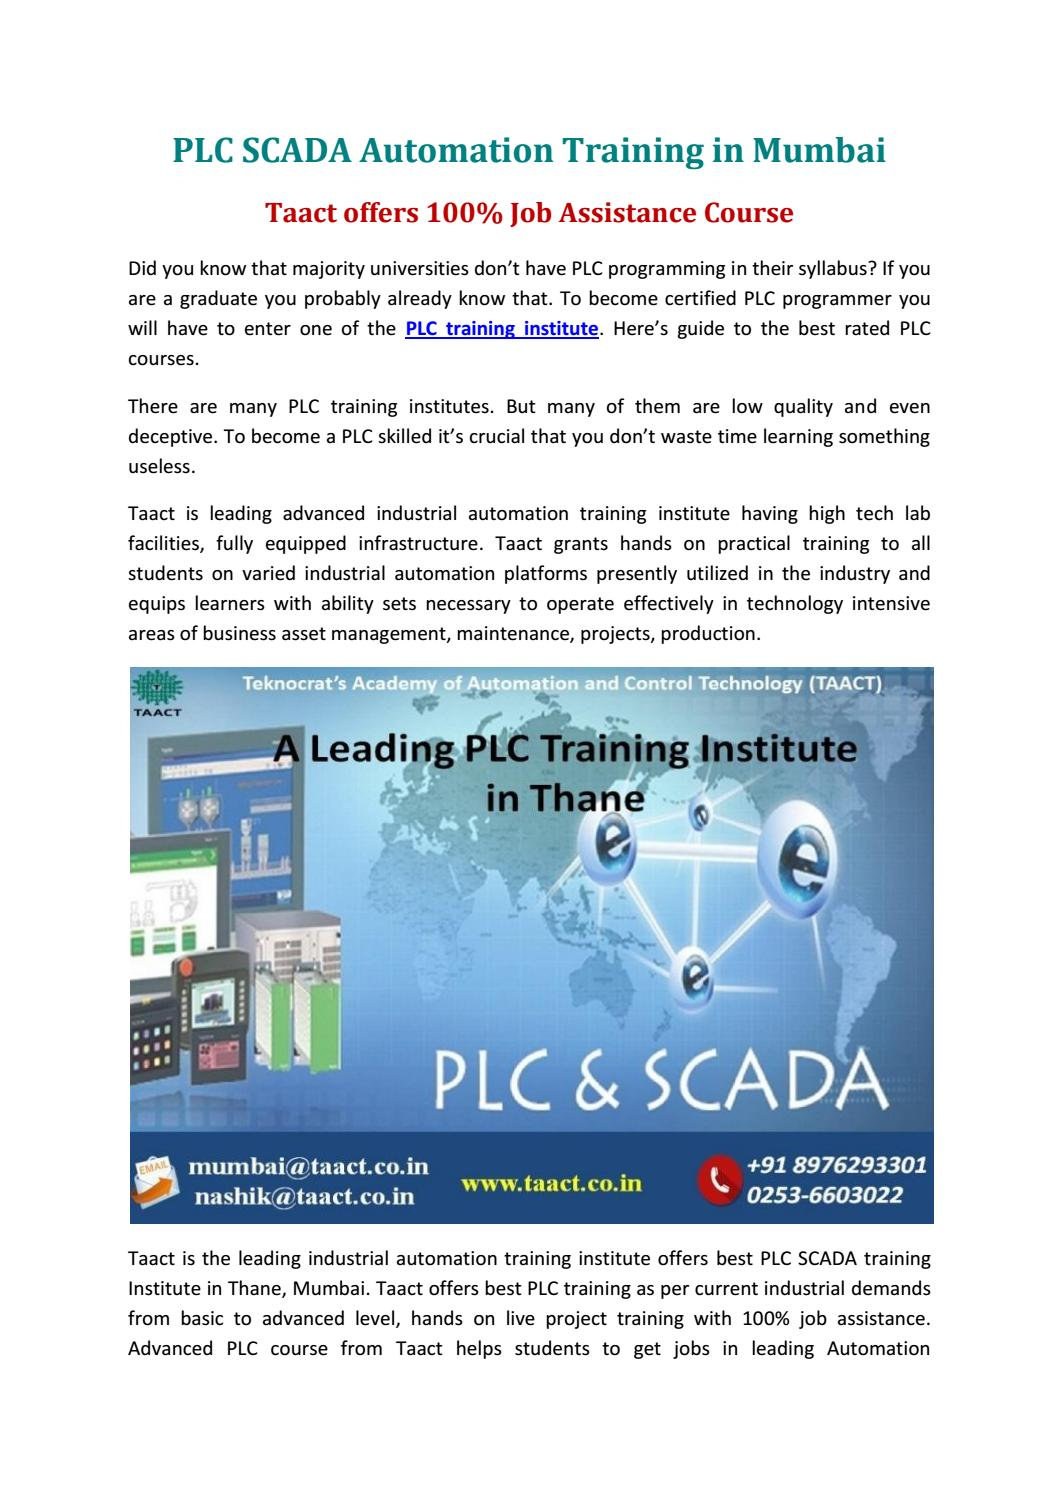 PLC SCADA Automation Training in Mumbai by Taact Training in